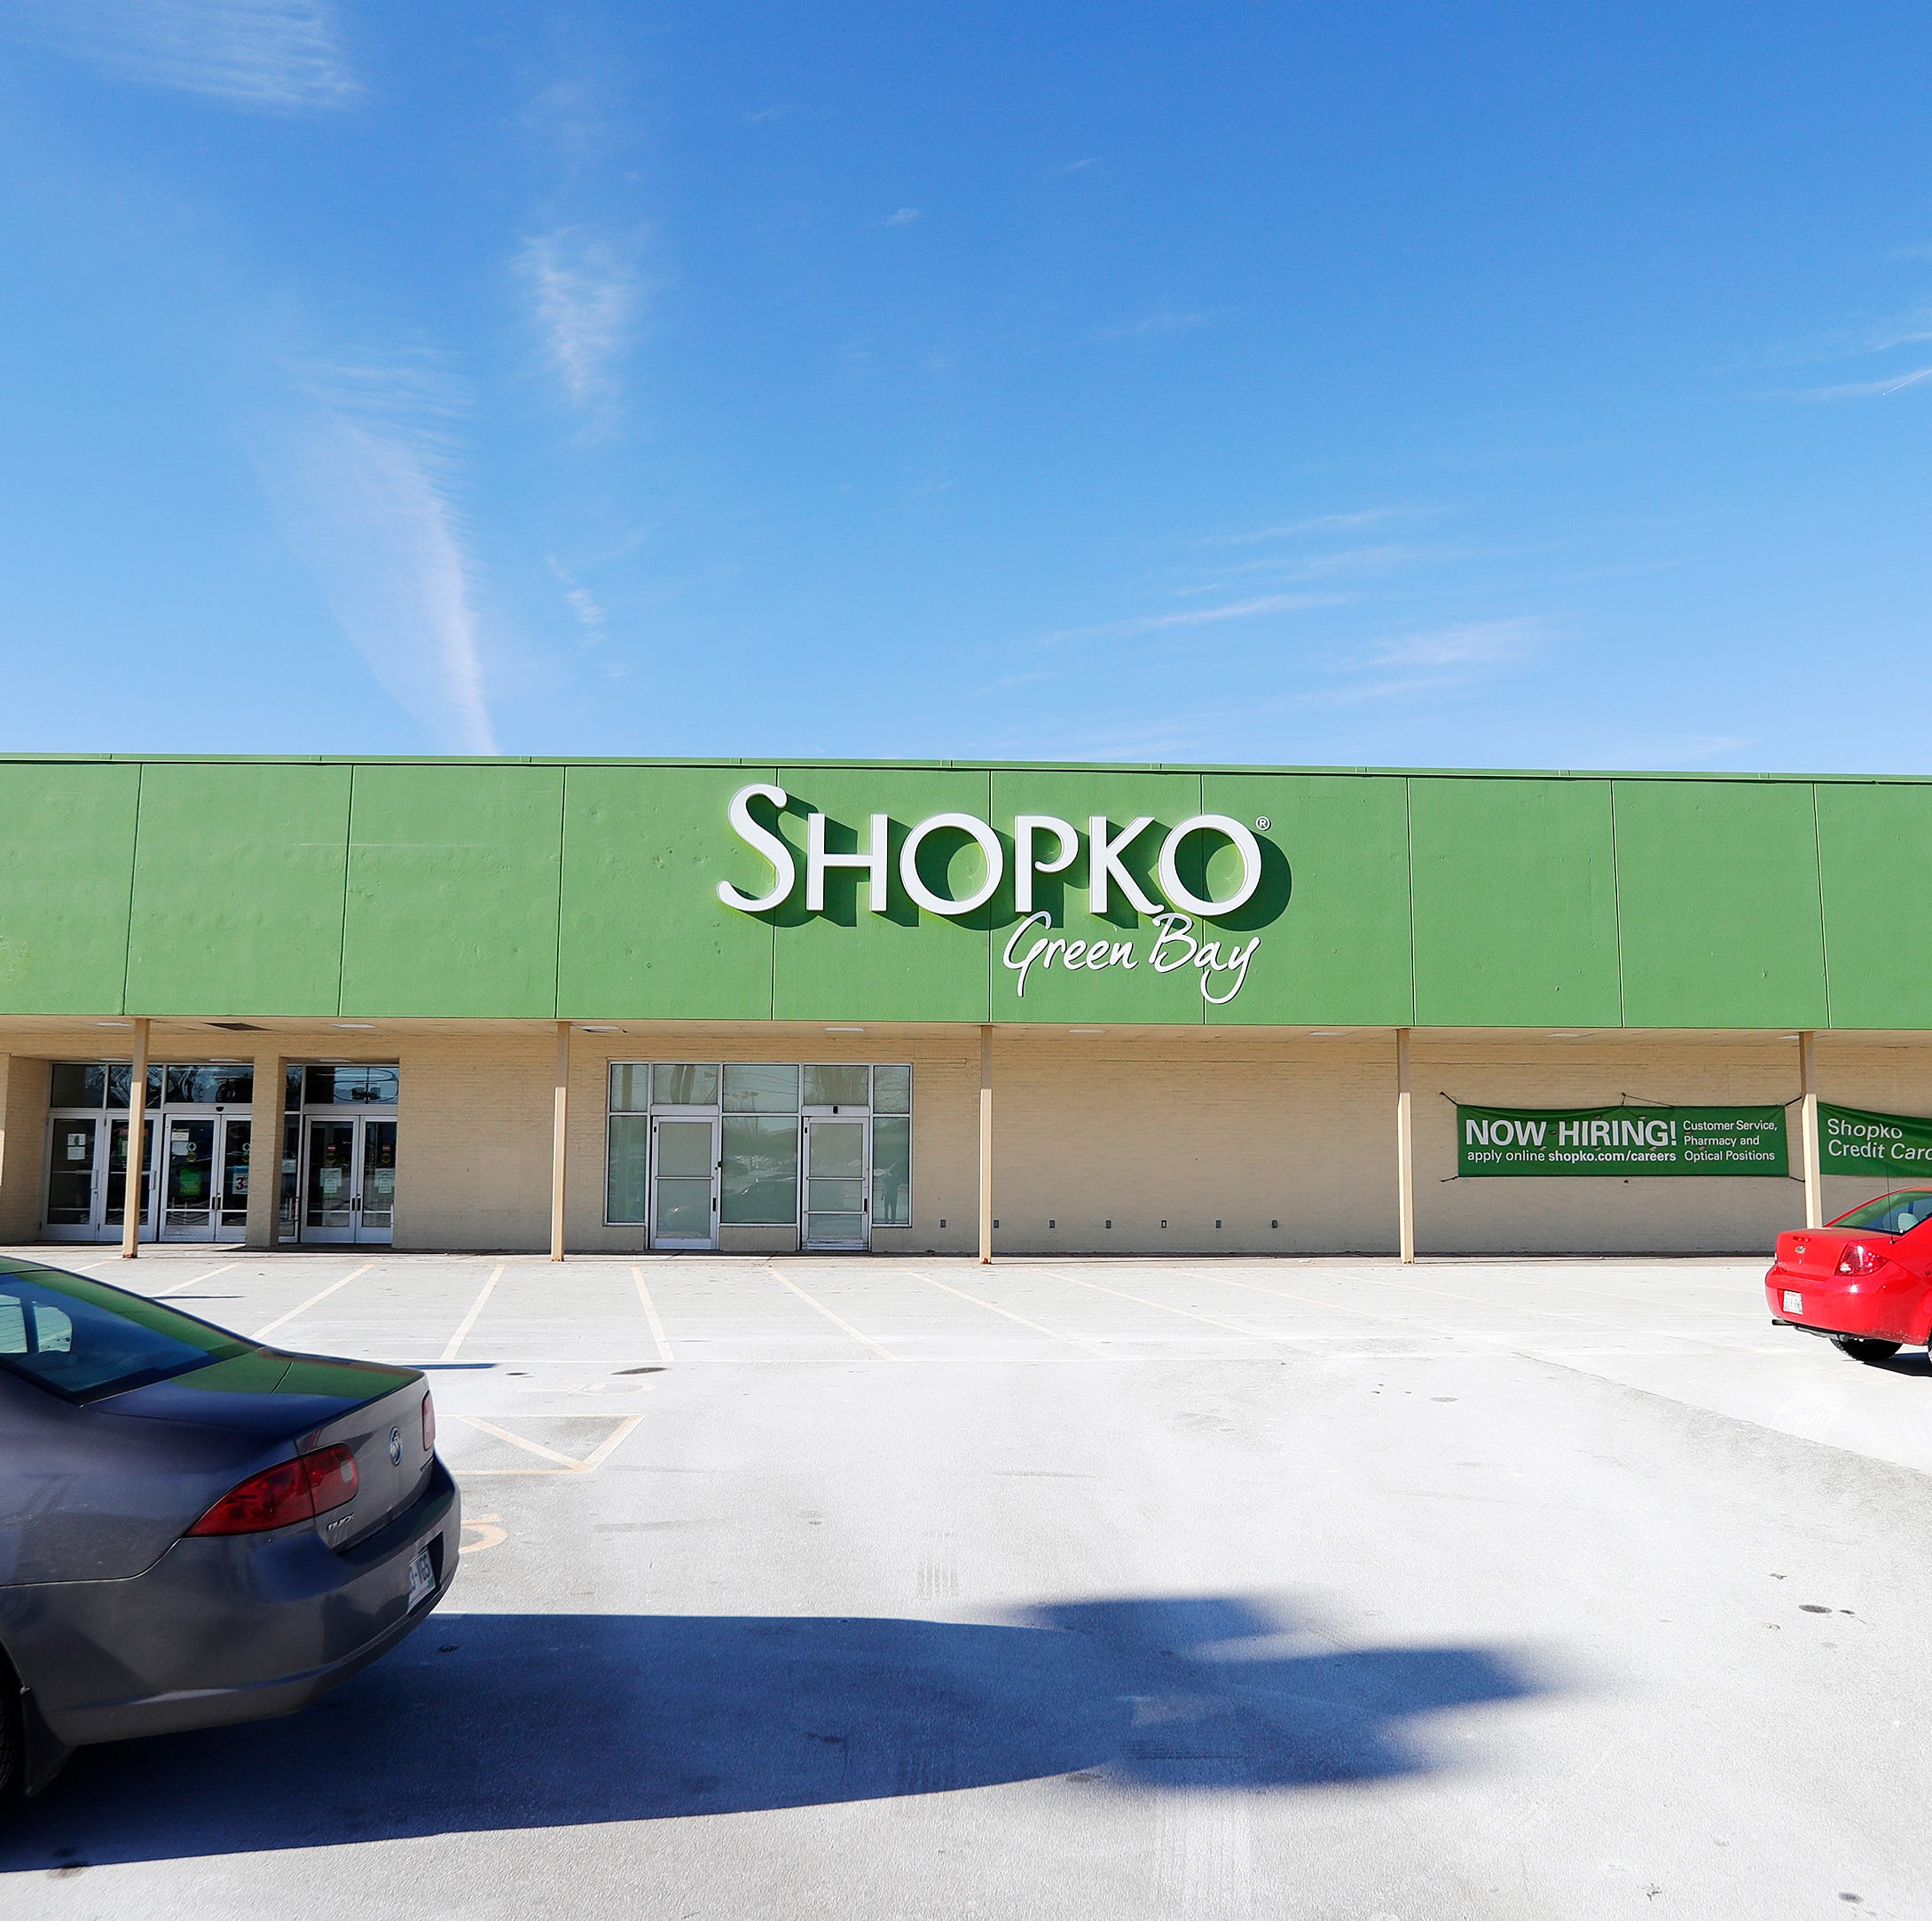 We want to hear your thoughts about Shopko. Take this survey